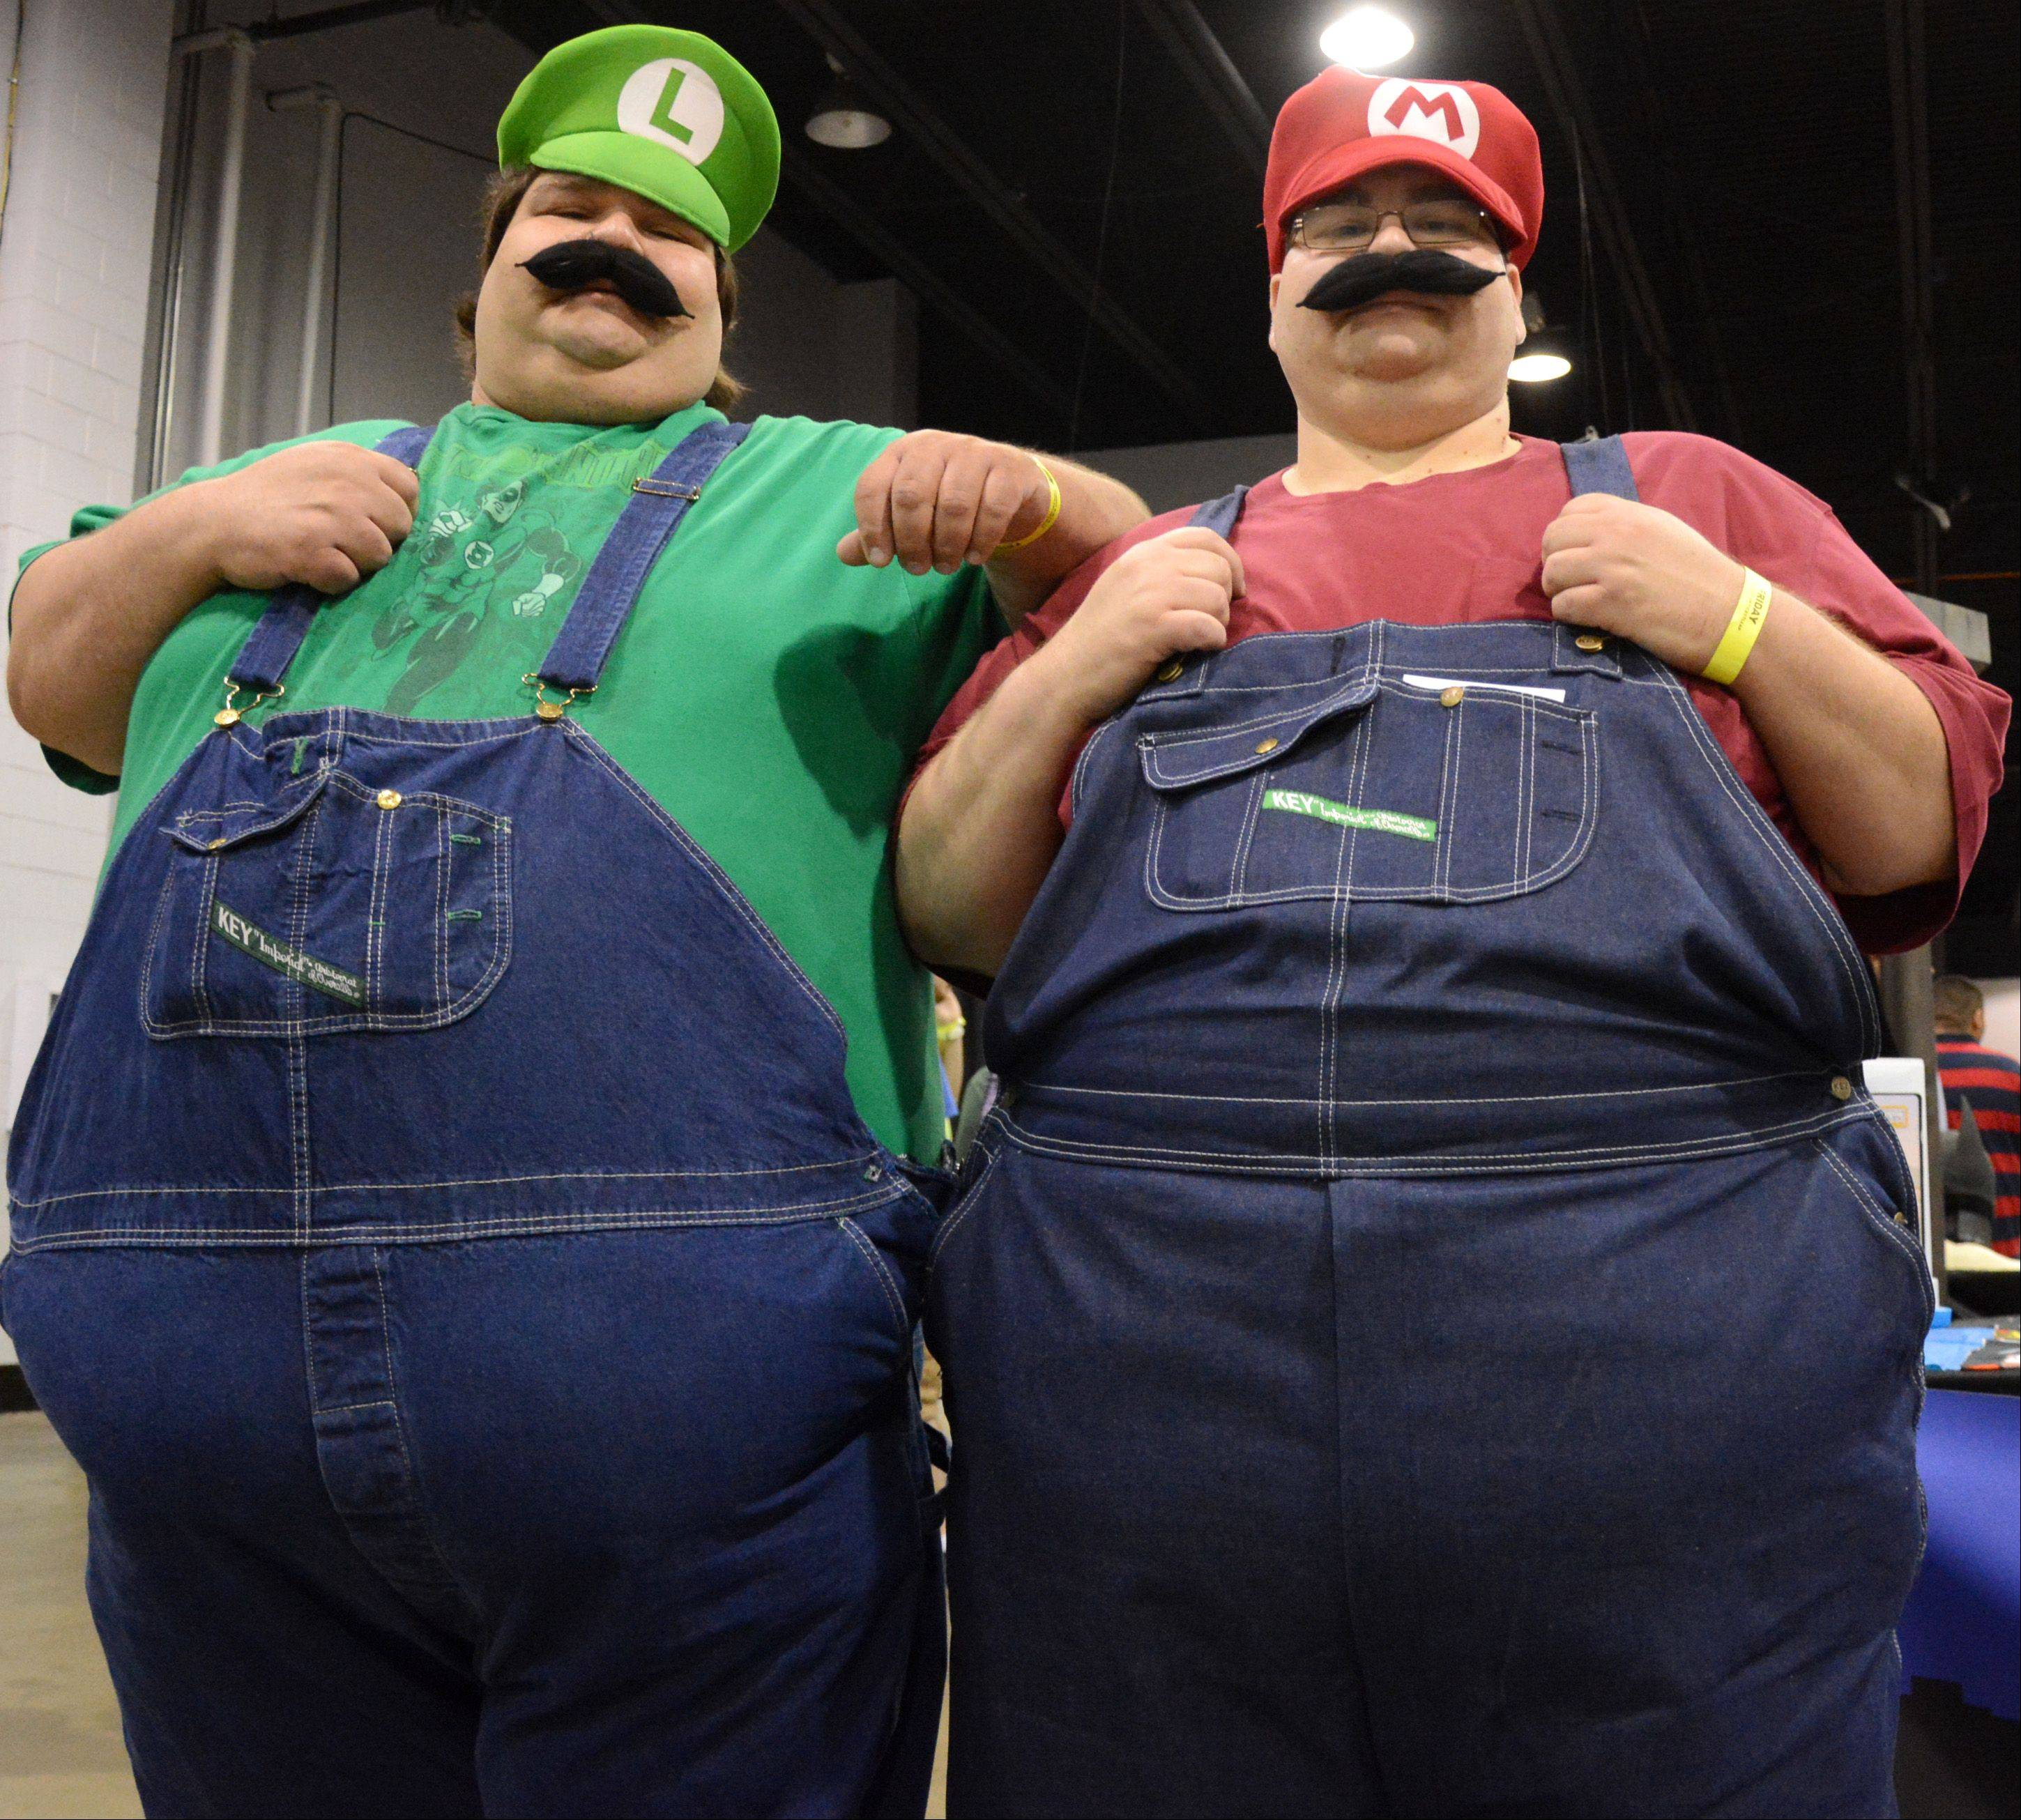 Sal Urso, left, and brother Dominico, both of Chicago, dress up as Mario and Luigi at Comic Con held at the Donald E. Stephens Convention Center in Rosemont Friday, August 9.